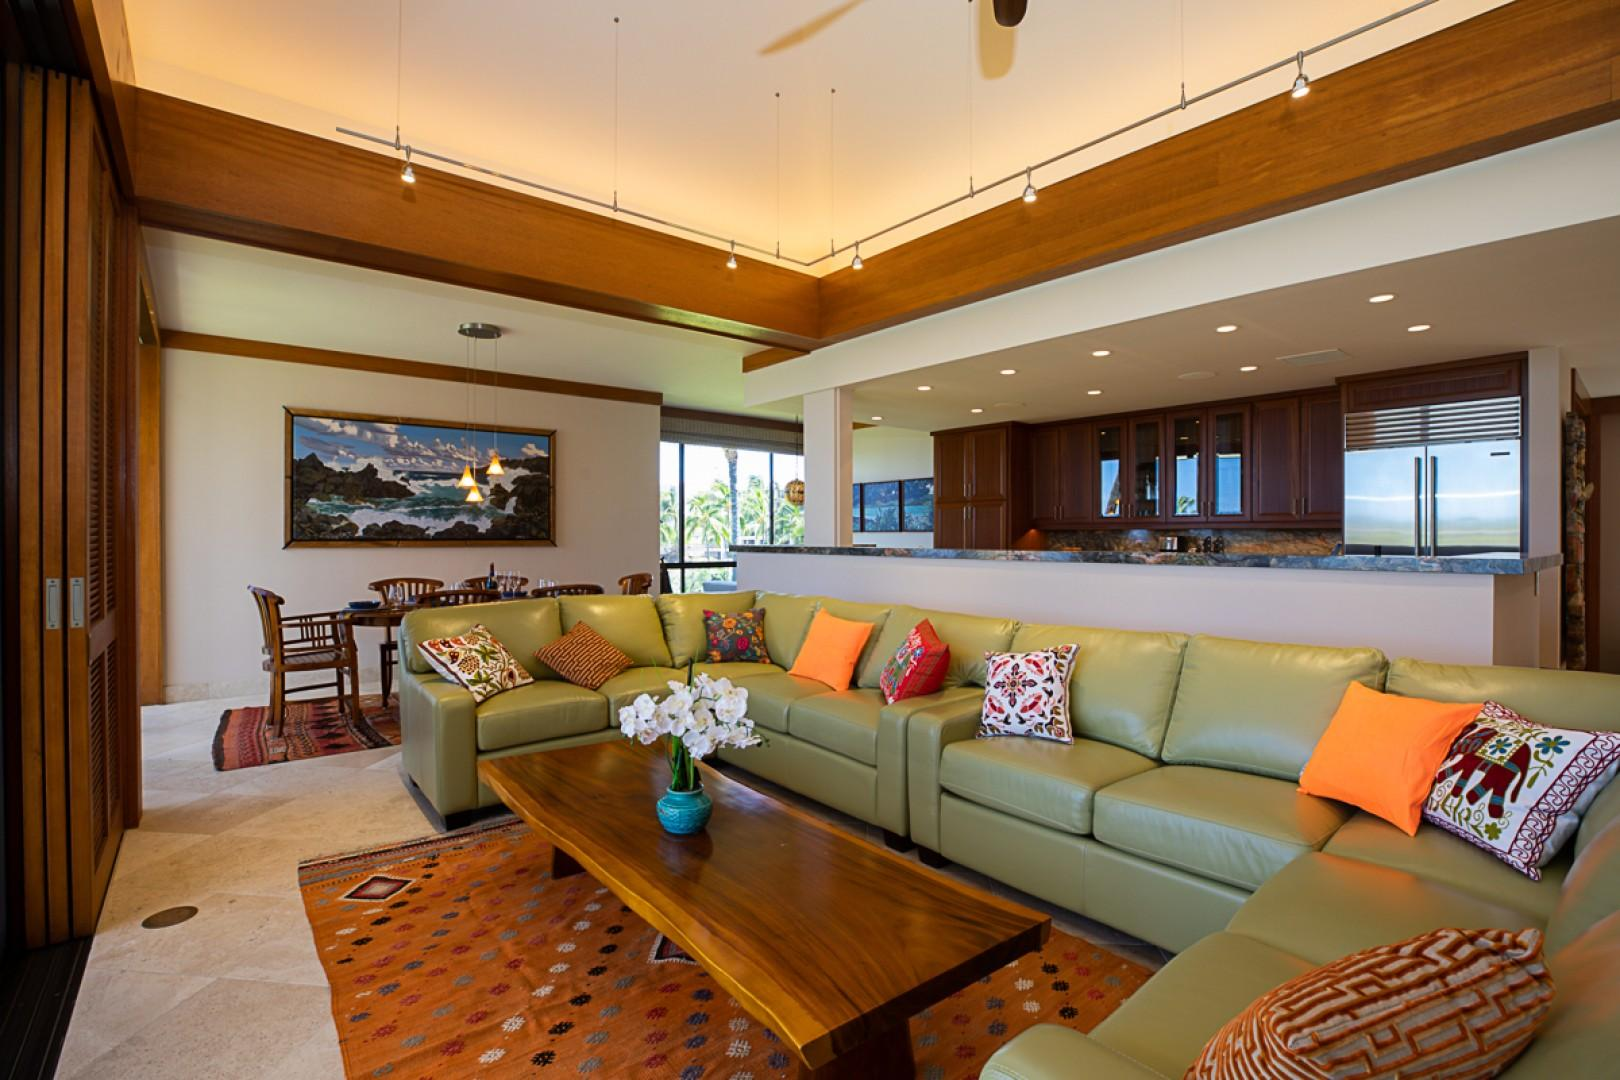 Spacious Living Room with Elevated Ceiling